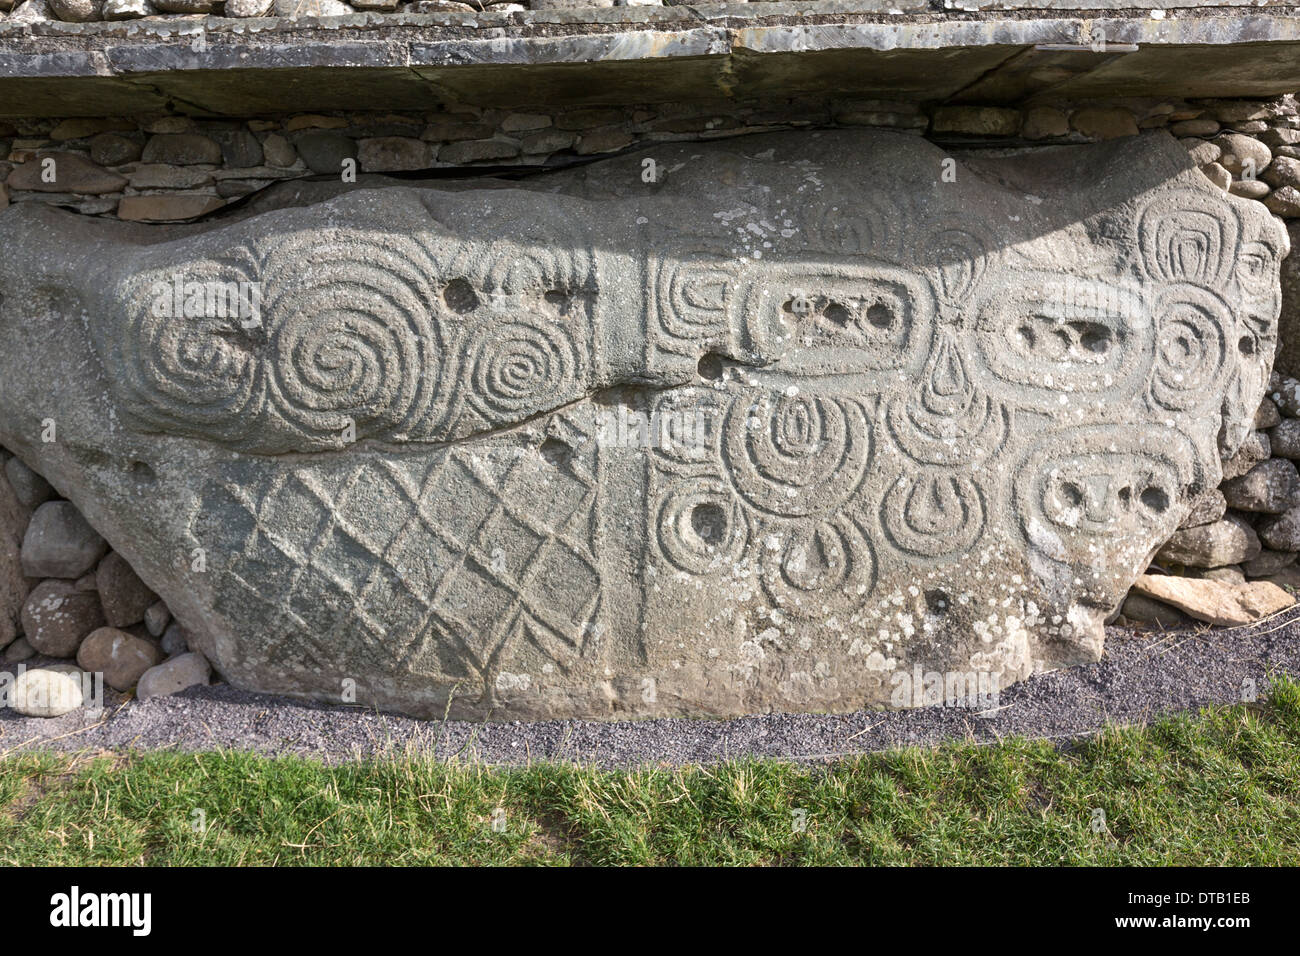 Newgrange neolithic rock art carved prehistoric monument